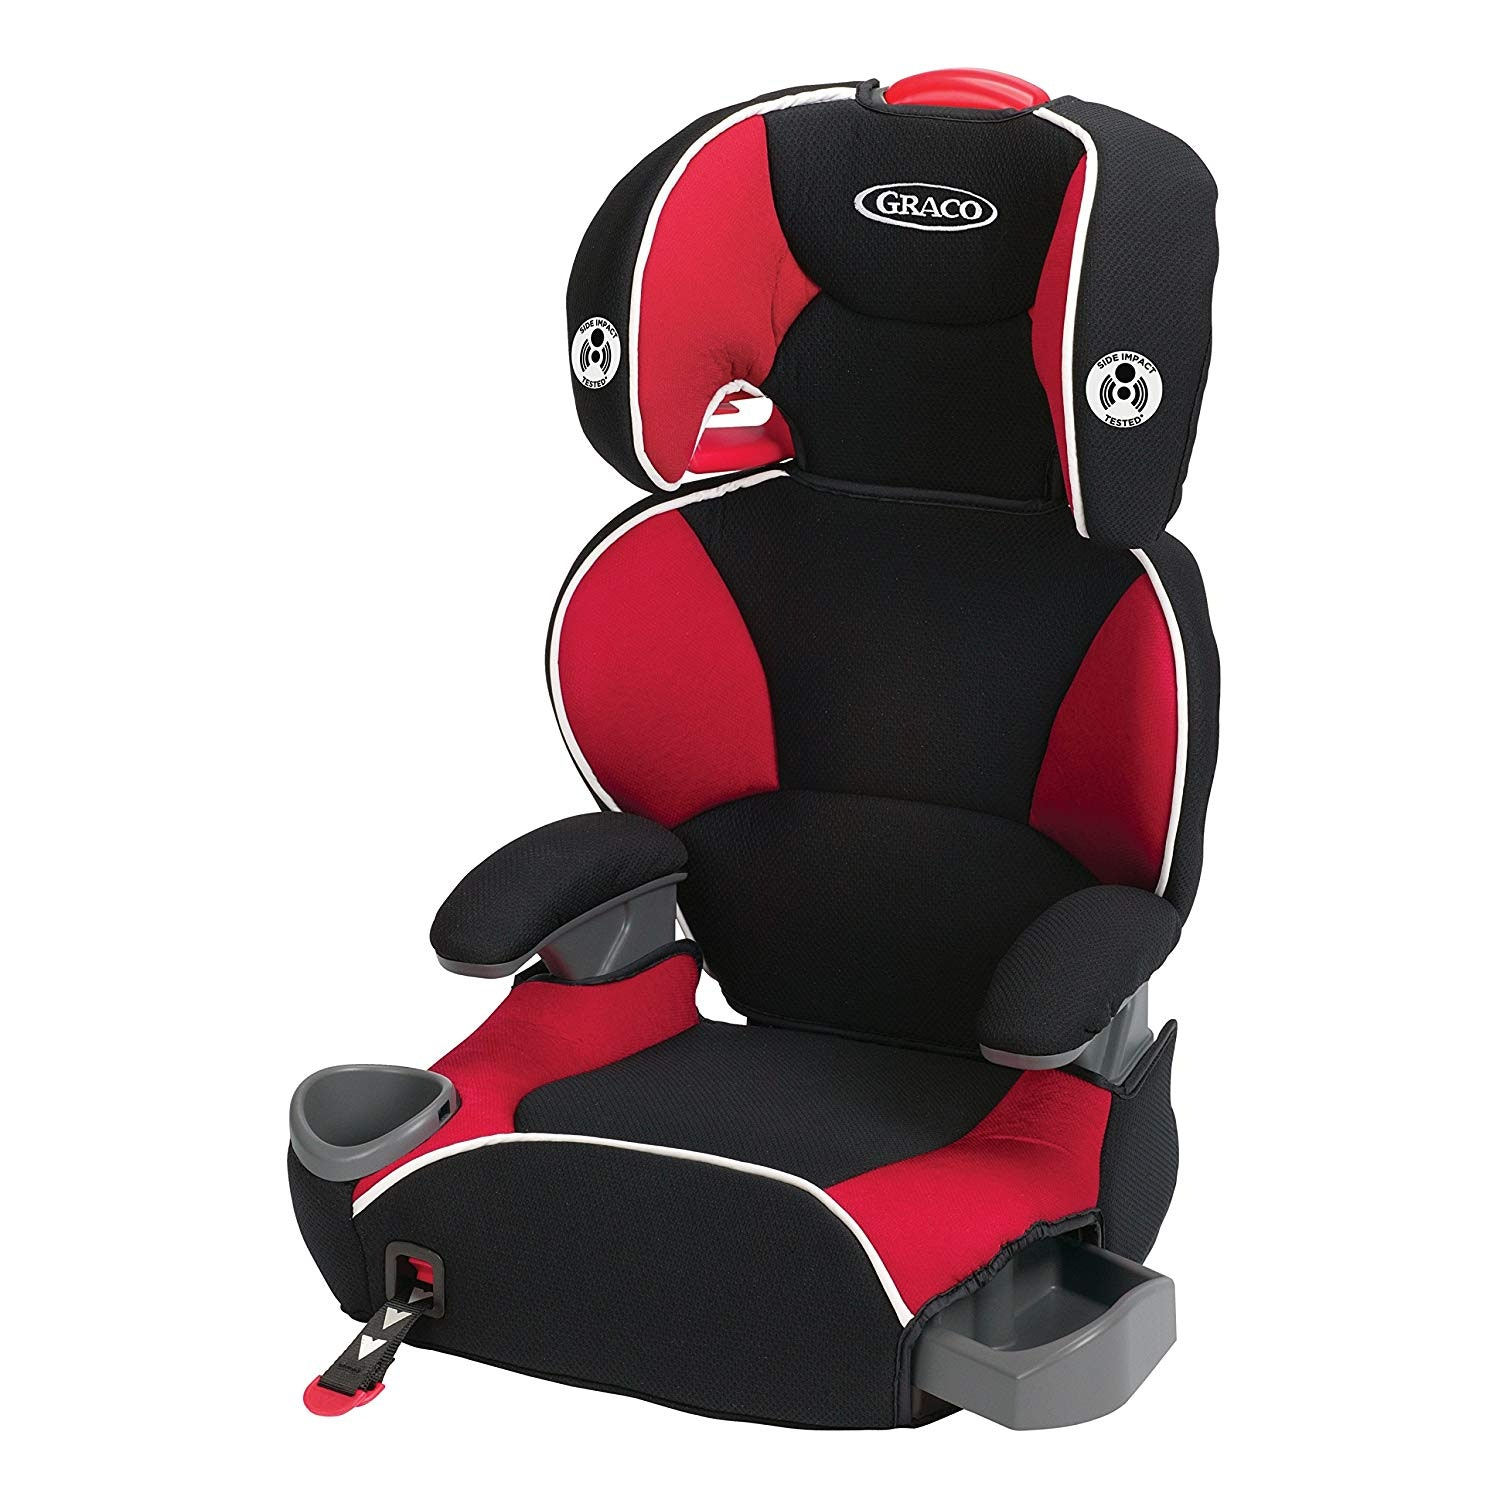 The Best Car Seat Deals For Black Friday 2018 That Are Worth Waking Up Early